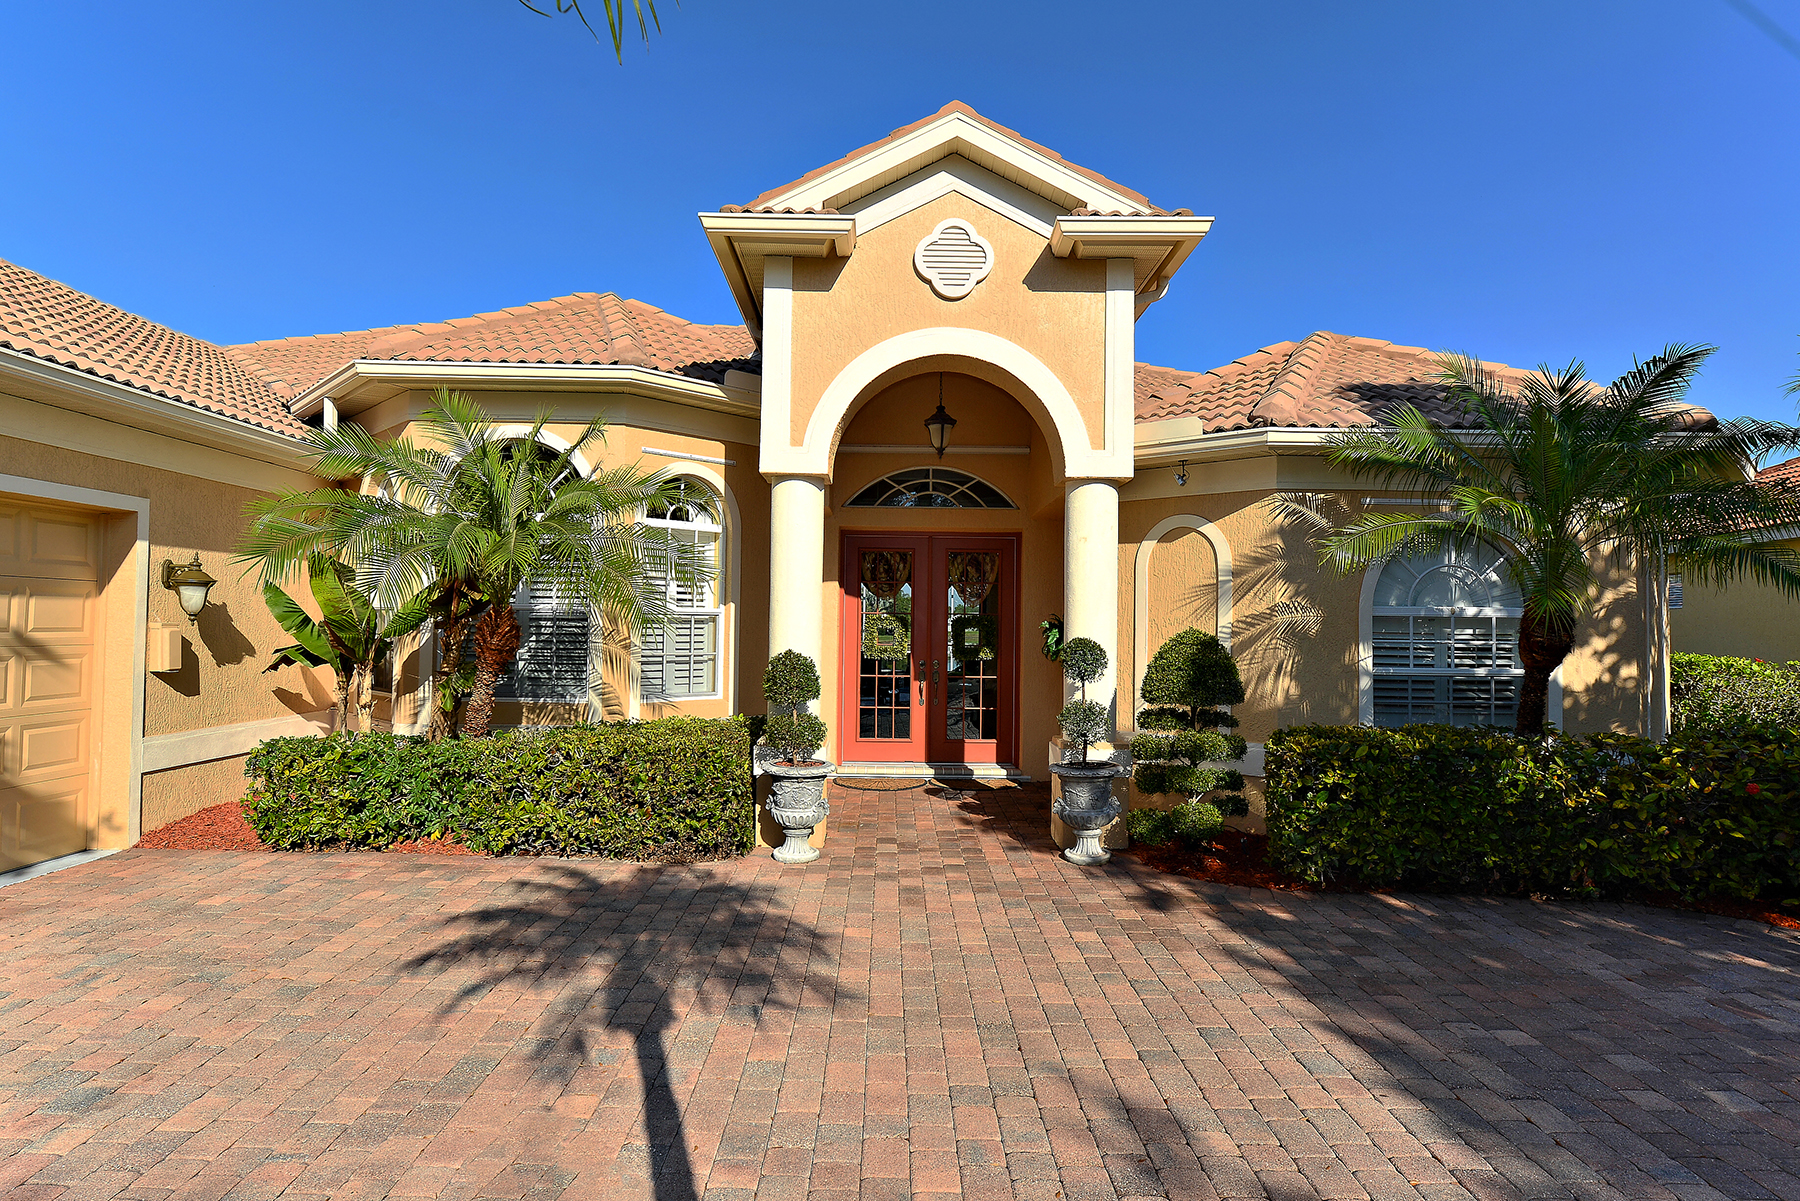 Single Family Home for Sale at VENETIA 4411 Via Del Villetti Dr Venice, Florida, 34293 United States